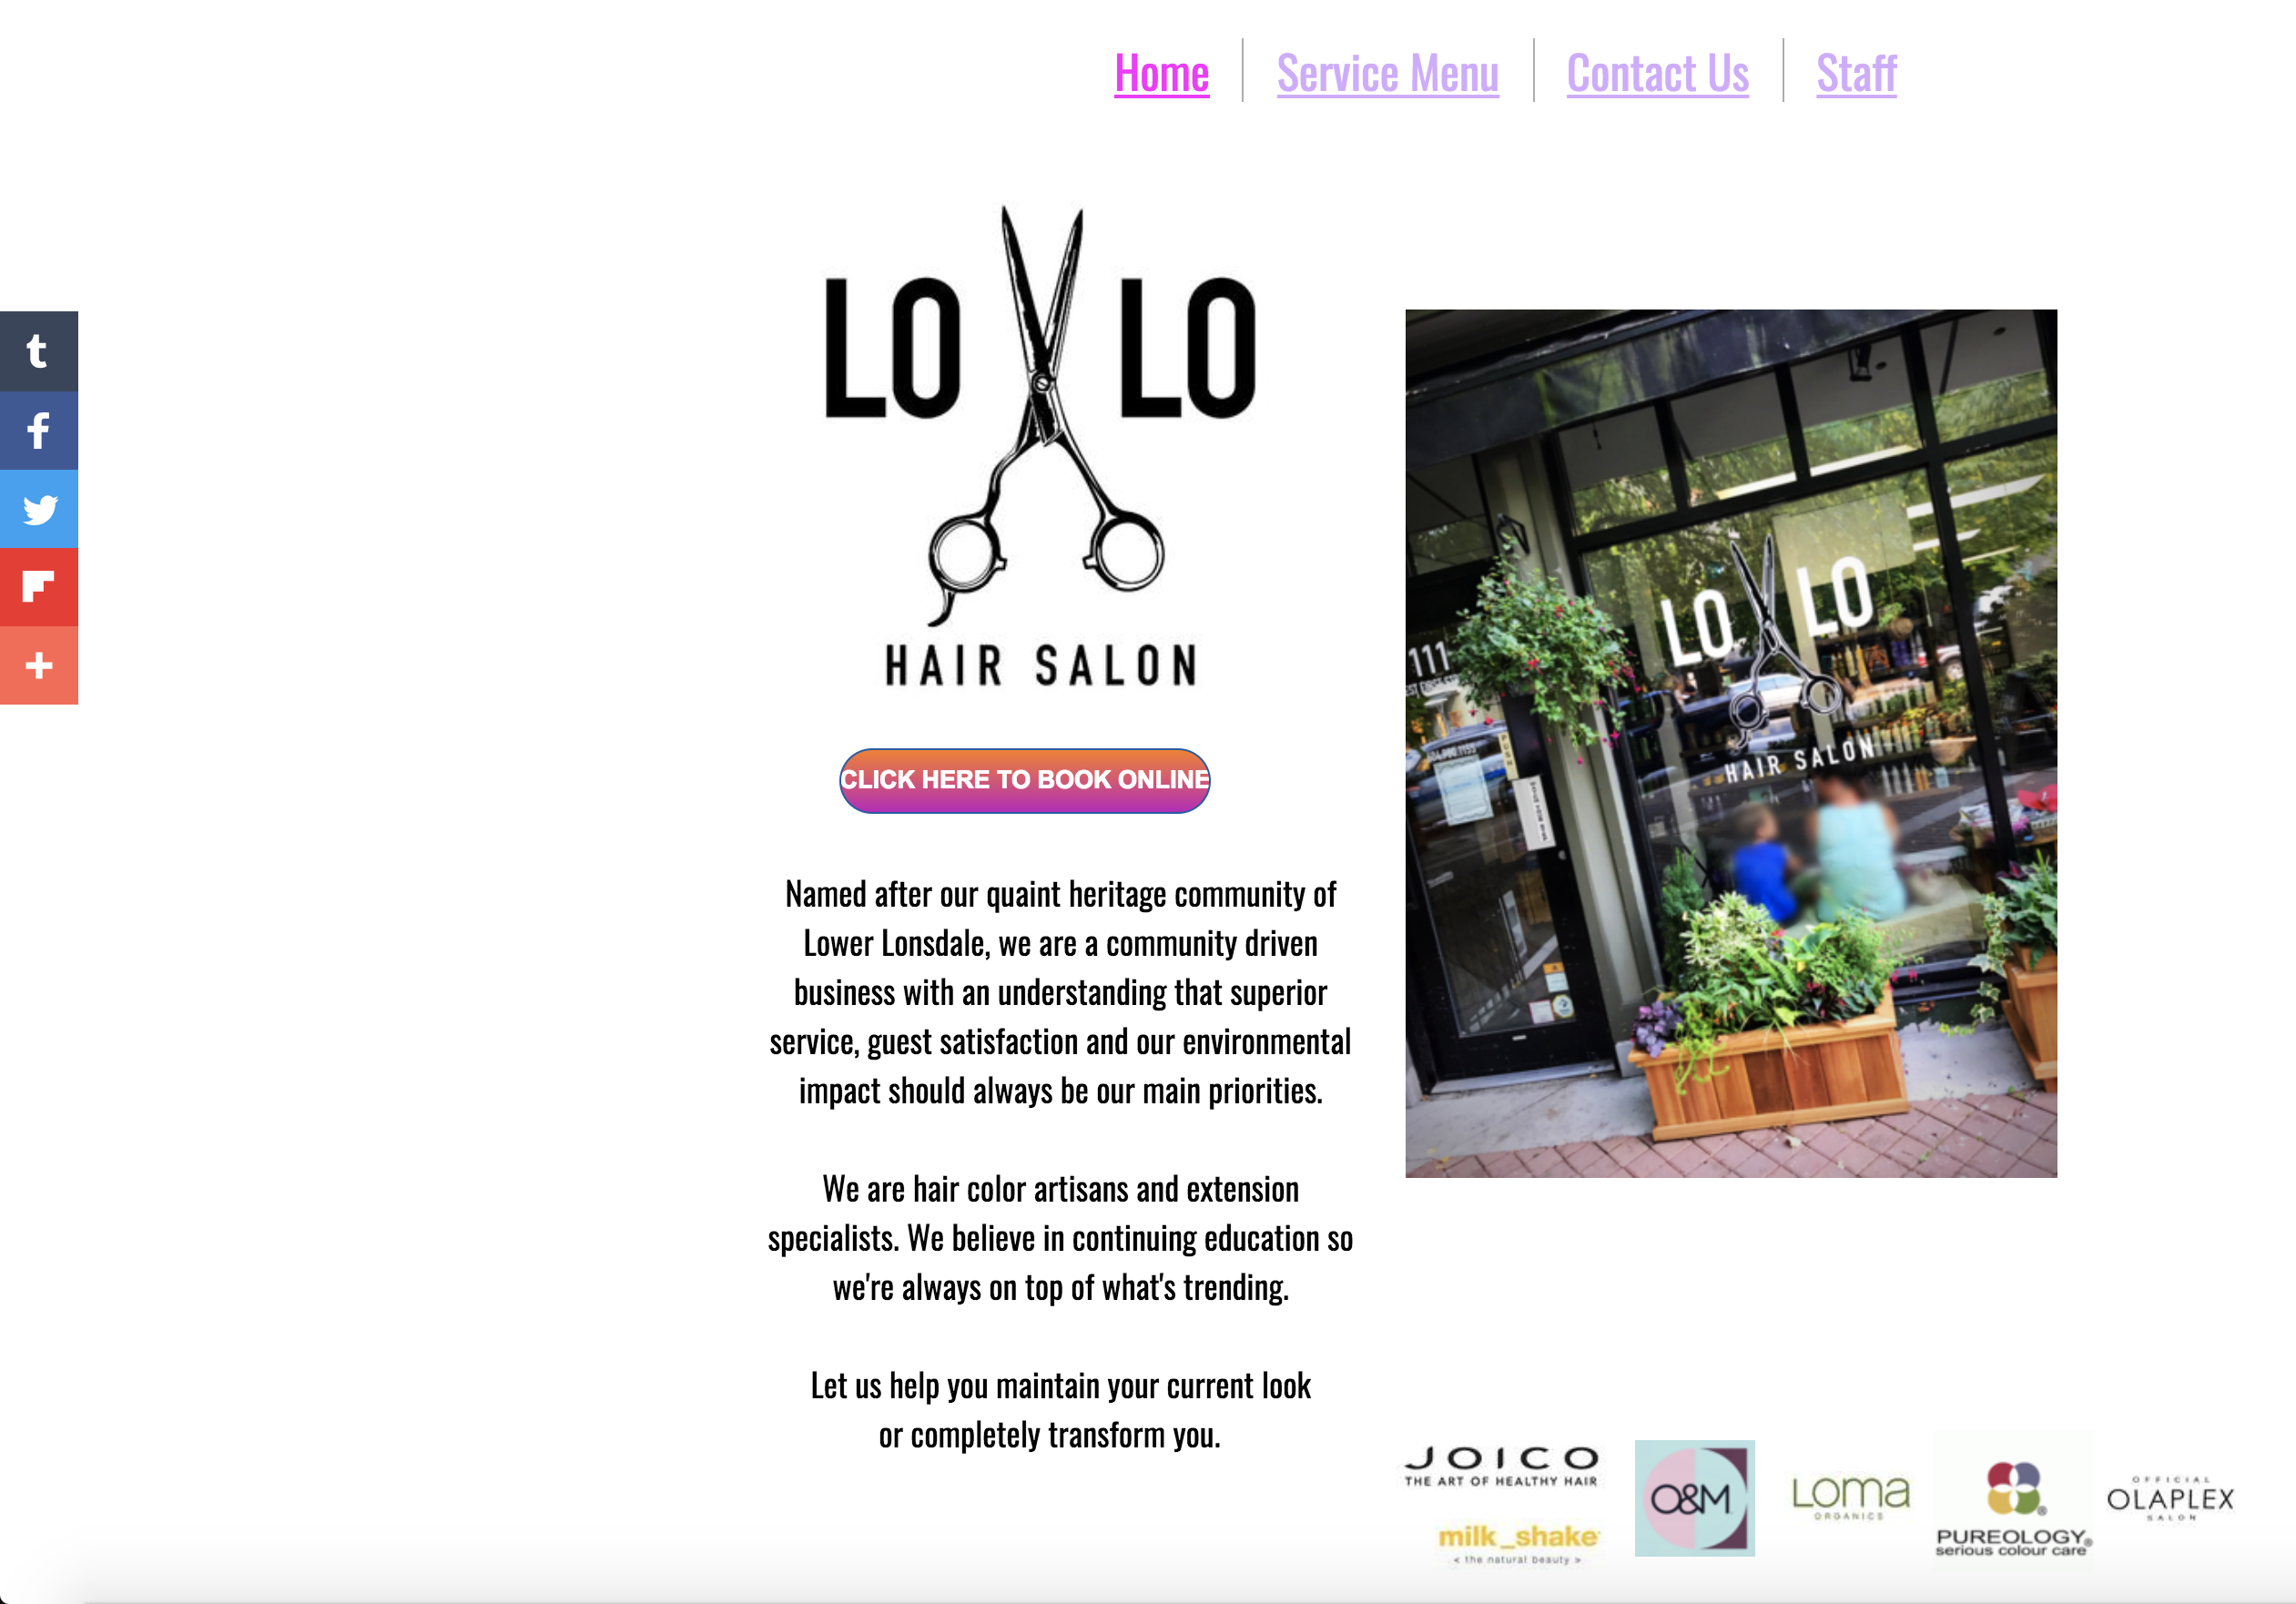 LoLo Hair Salon old home page